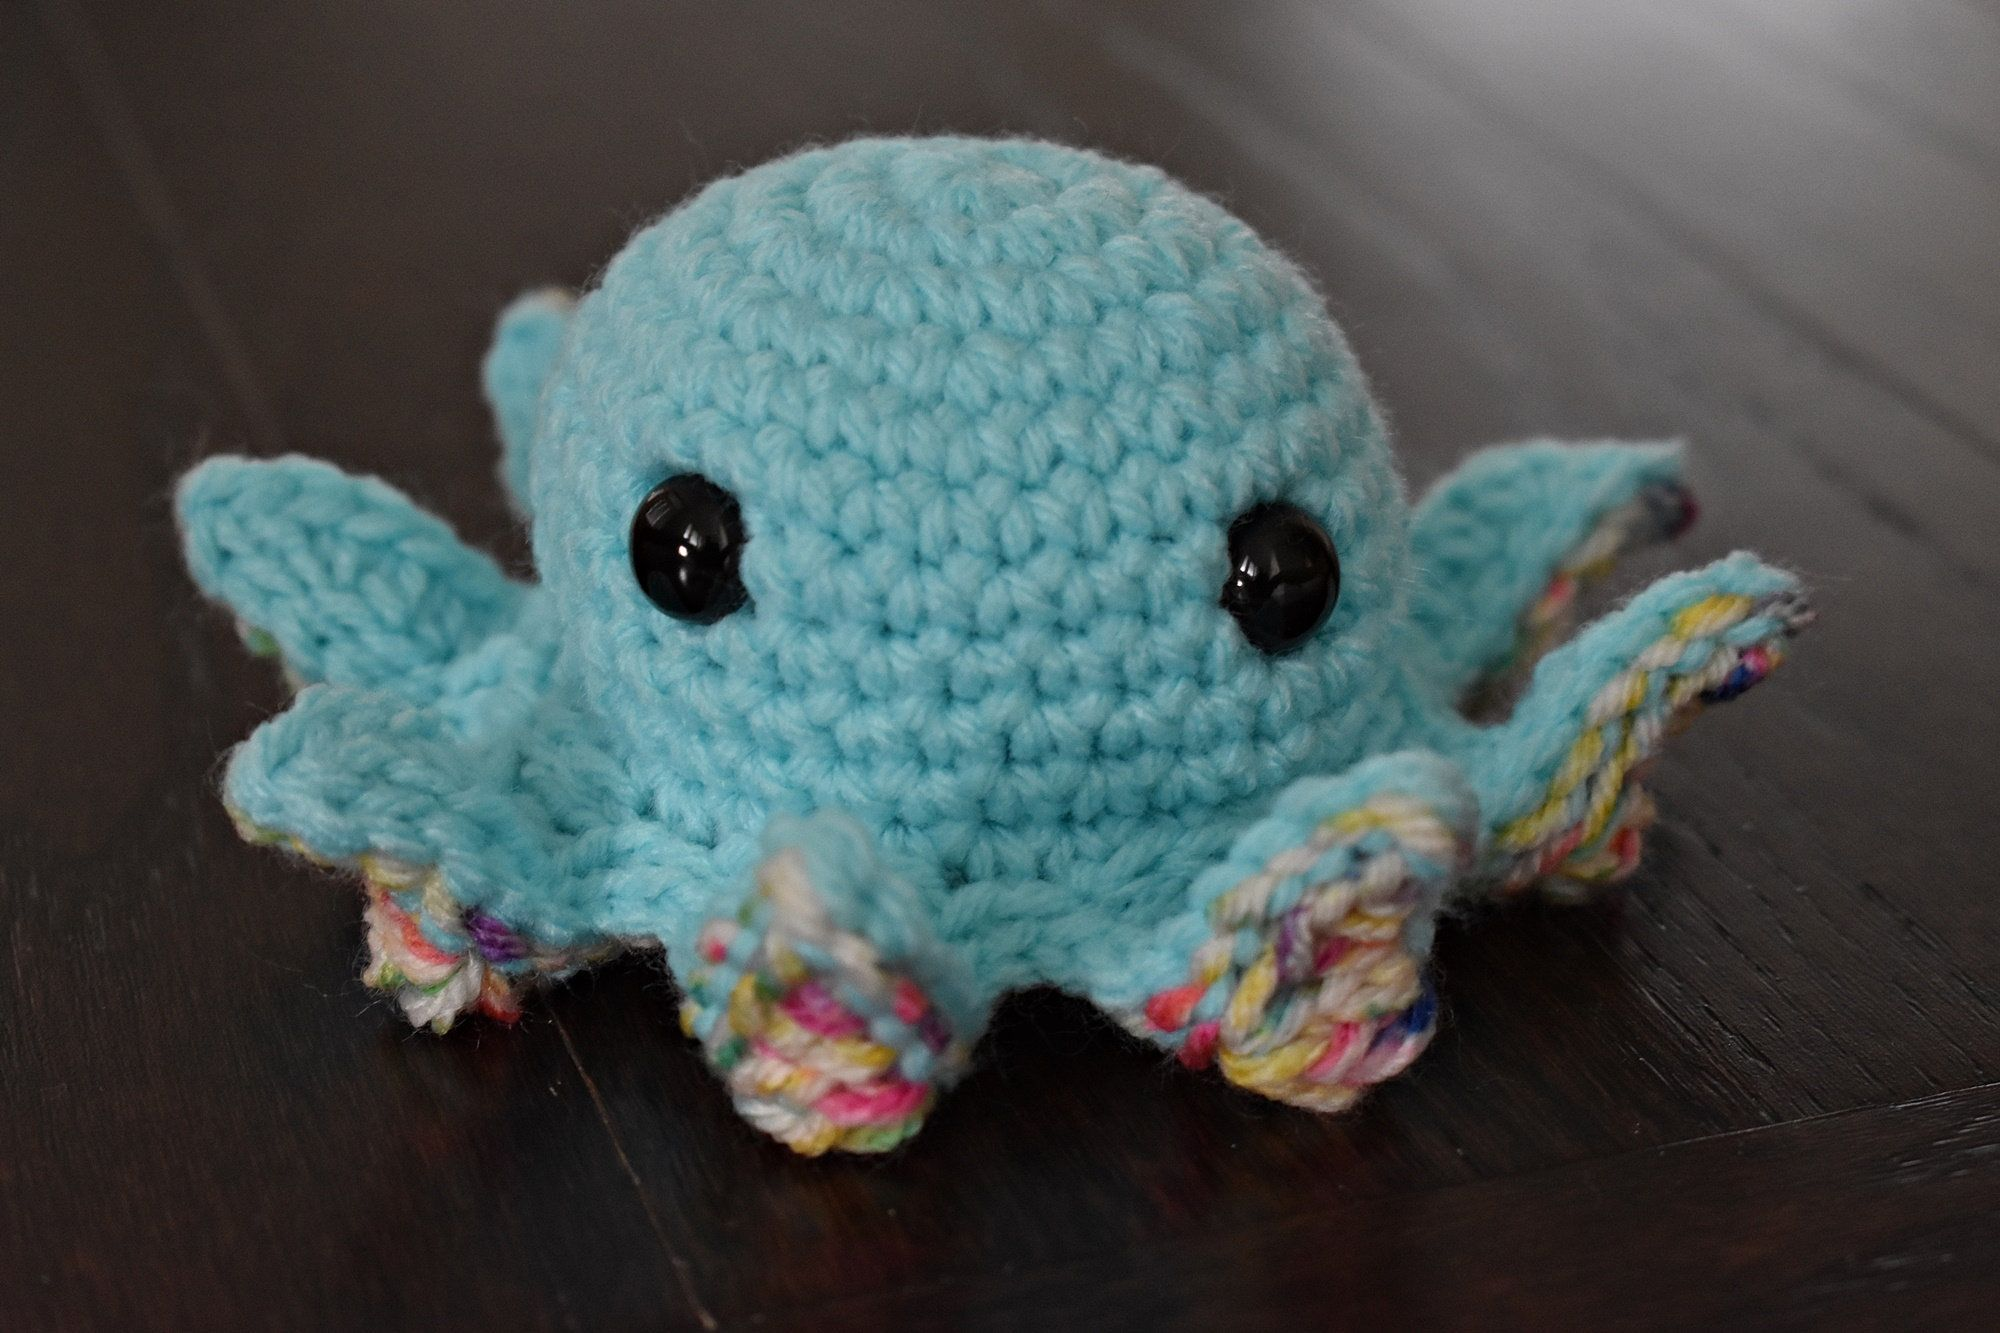 Mini Octopus, Crochet Octopus, Octopus Stuffy, Stuffed Octopus, Octopus Lover Gift, Amigurumi, Plushy, Octopus Plushy, Stuffed Animal